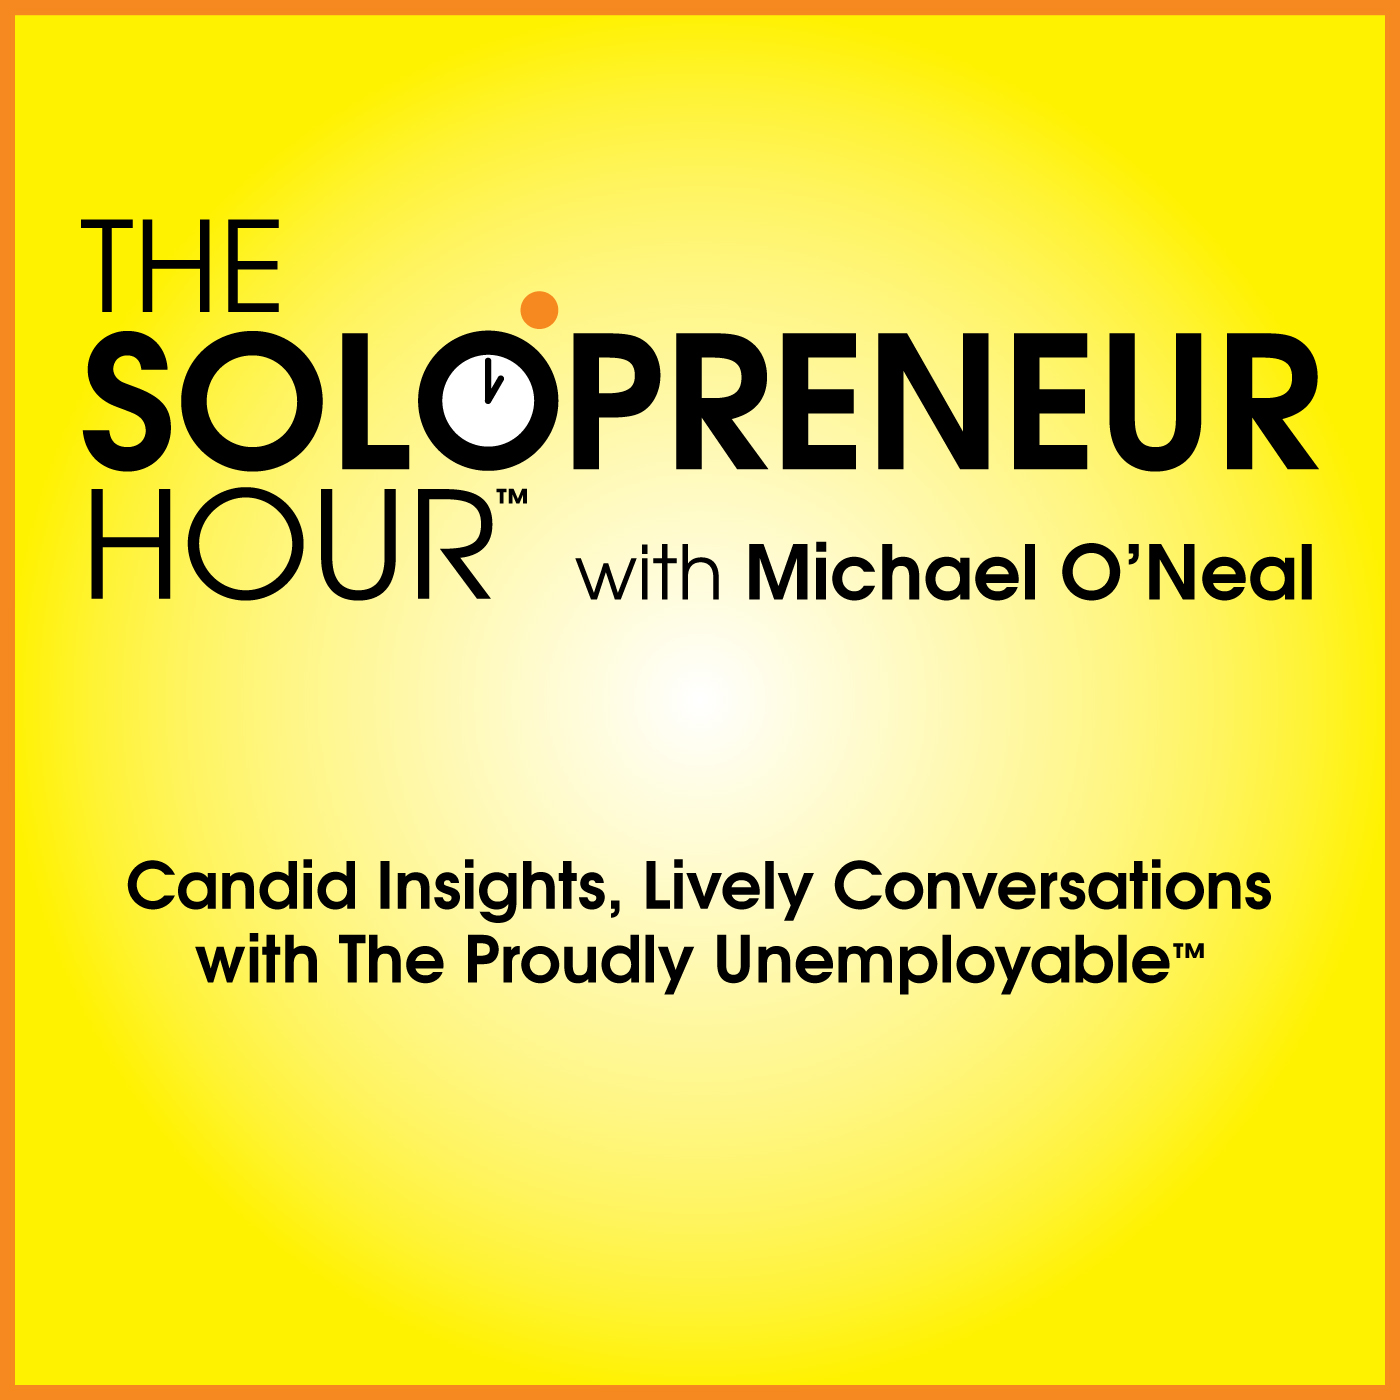 The Solopreneur Hour Podcast with Michael O'Neal - Job Security...for the Unemployable